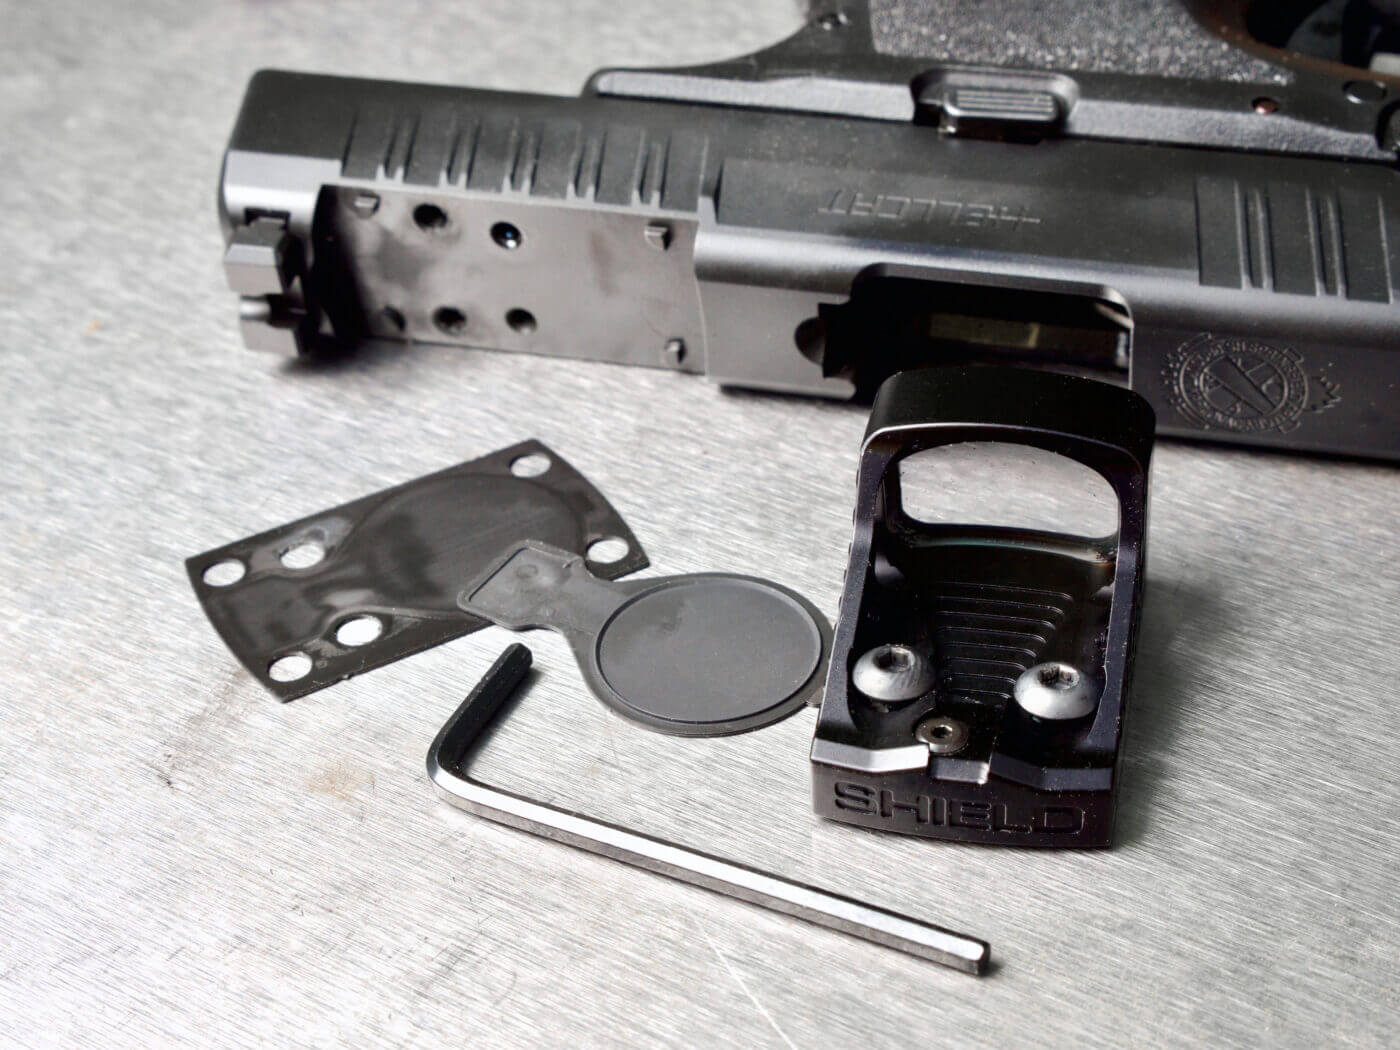 Installing the Shield RMSw onto the slide of a Hellcat OSP